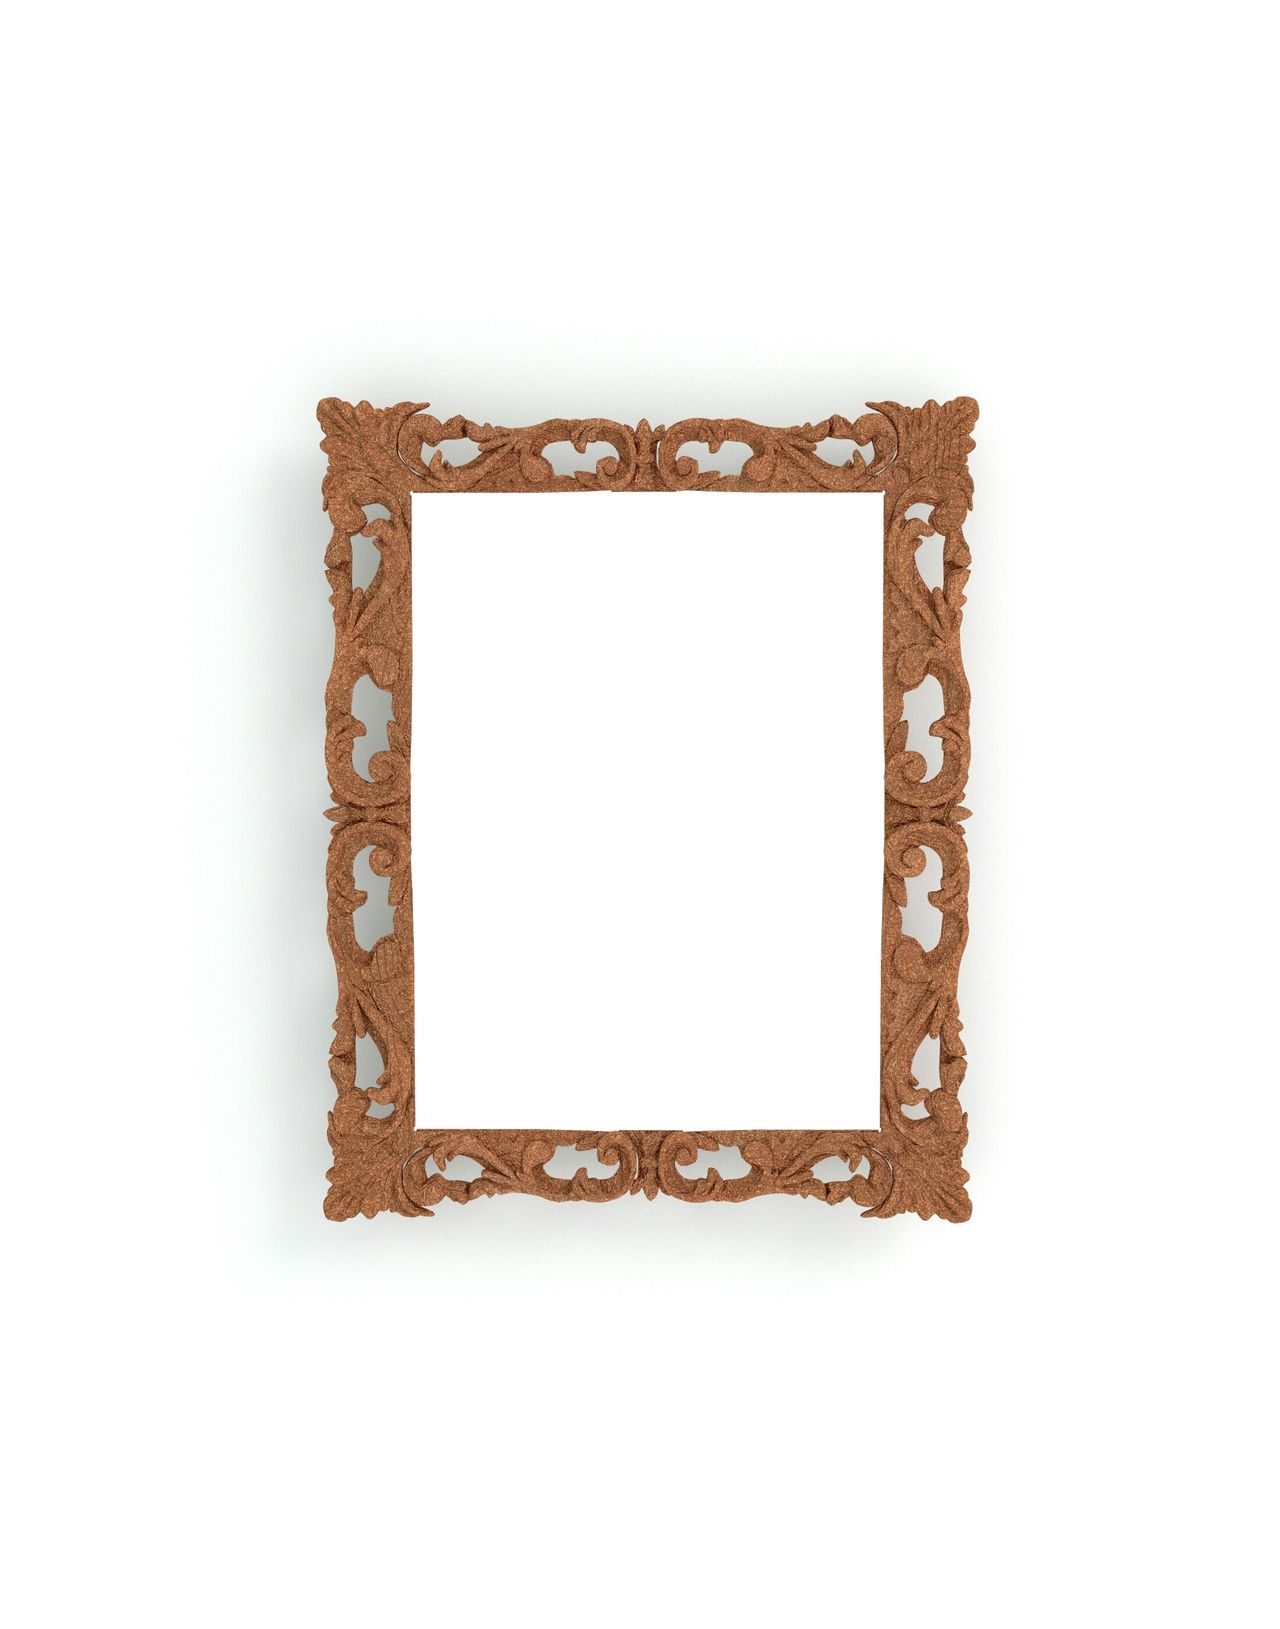 Stockphoto Exhibition Printshop Photoframe Blogphotography Product Photography Picture Wood Frame Baroque